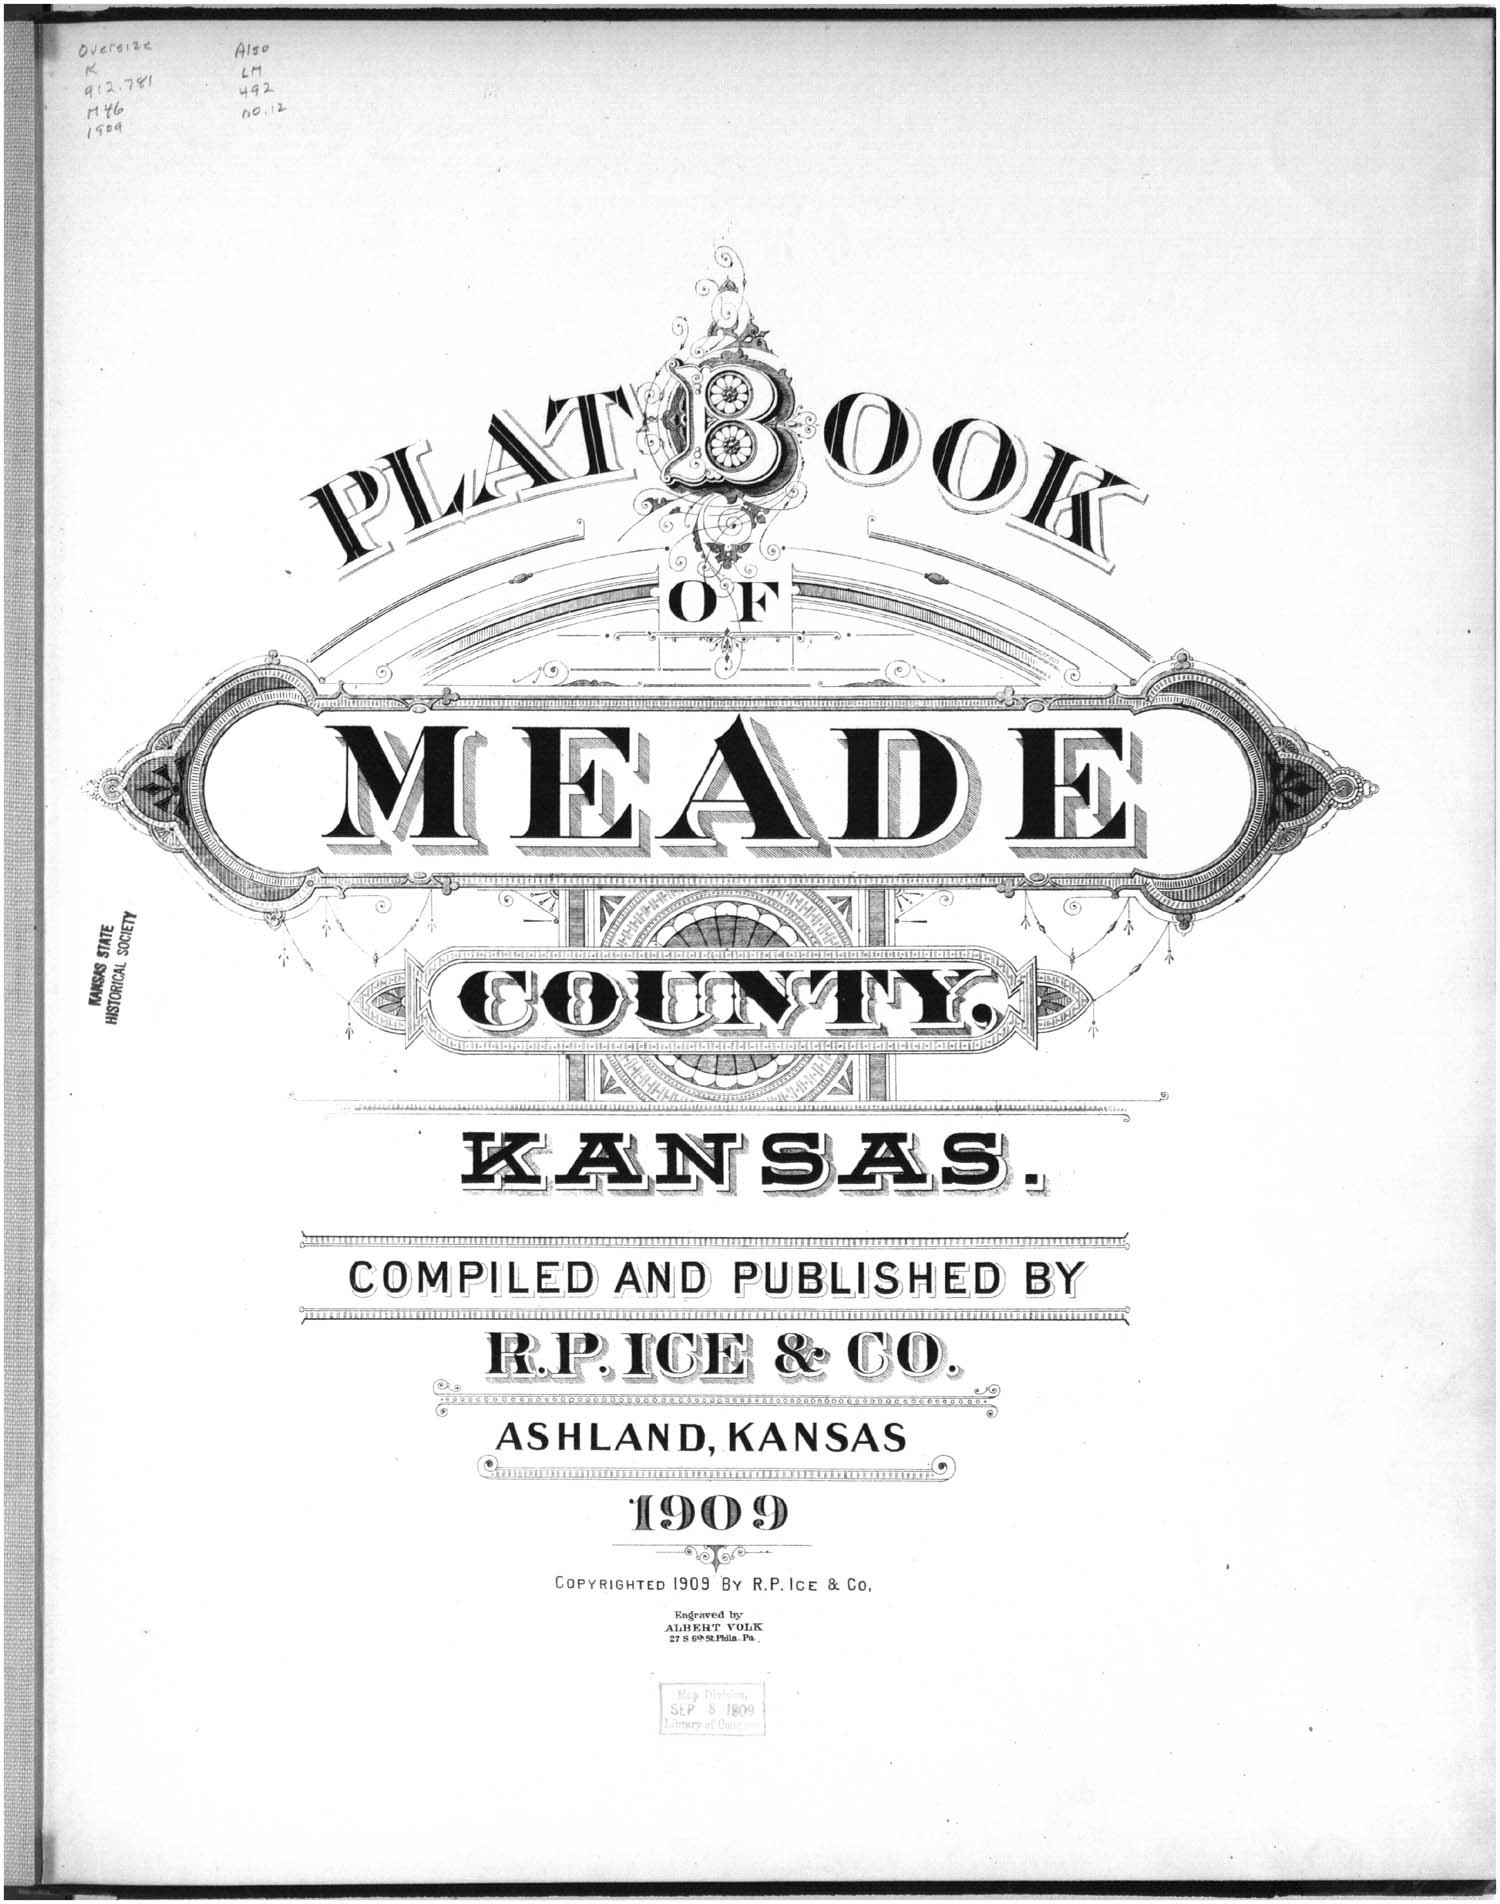 Plat book of Meade County, Kansas - Title Page